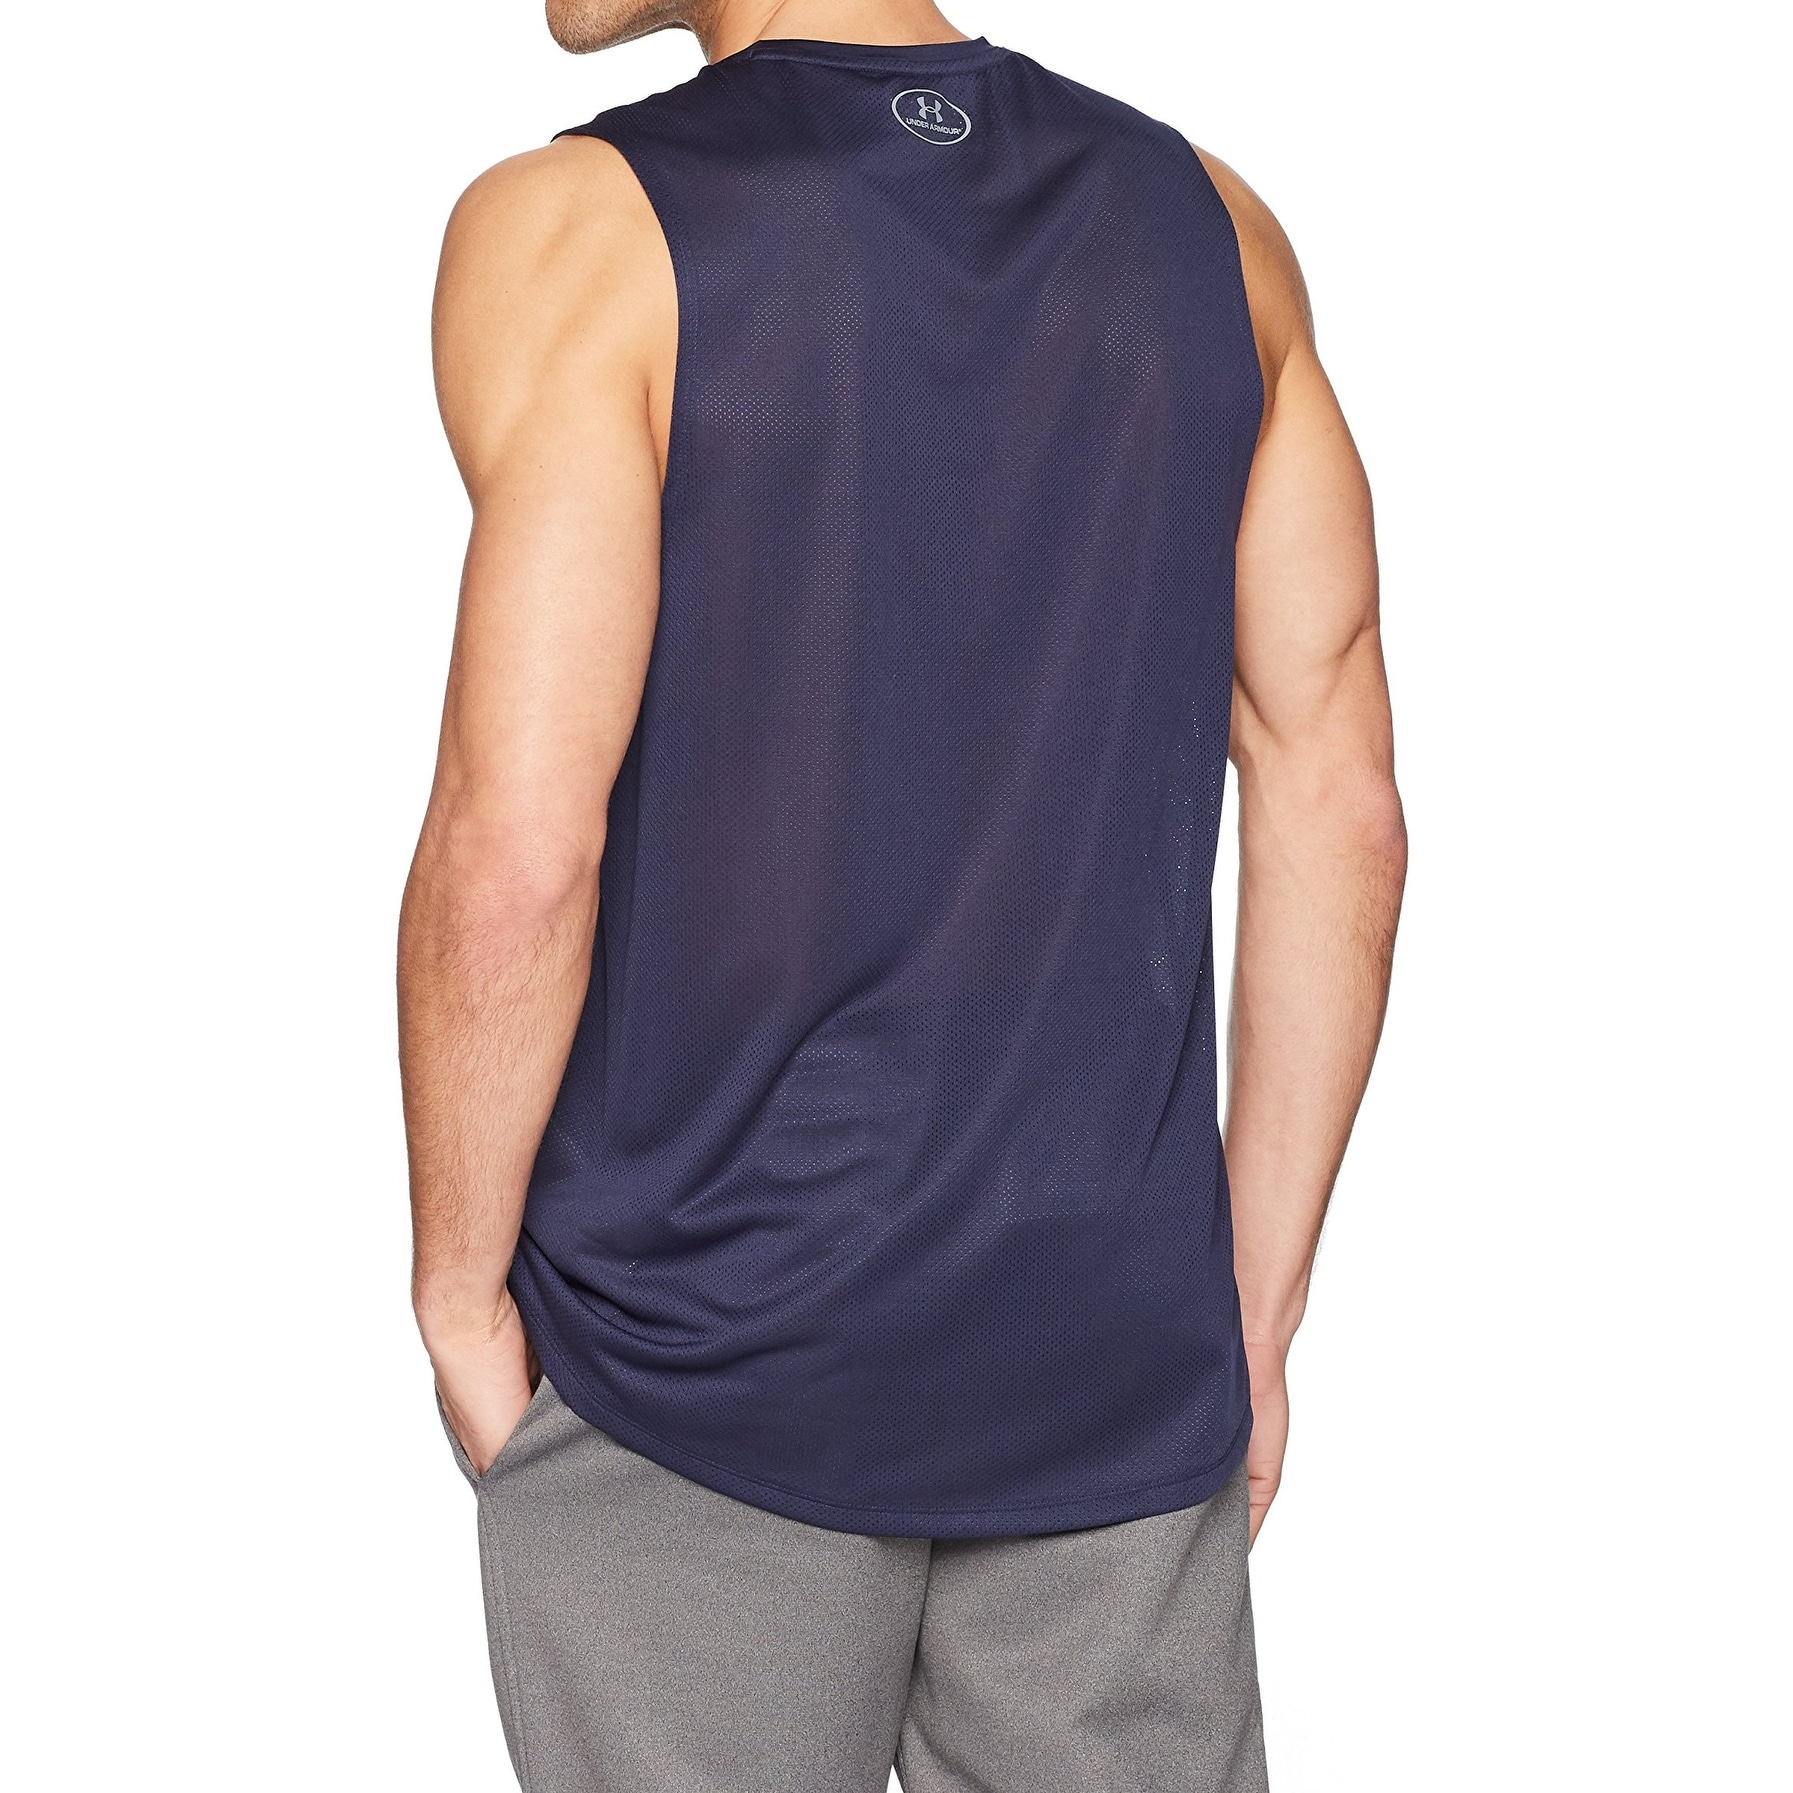 93f50780 Under Armour Navy Blue Mens Size 2XL Sleeveless Printed Tank Top